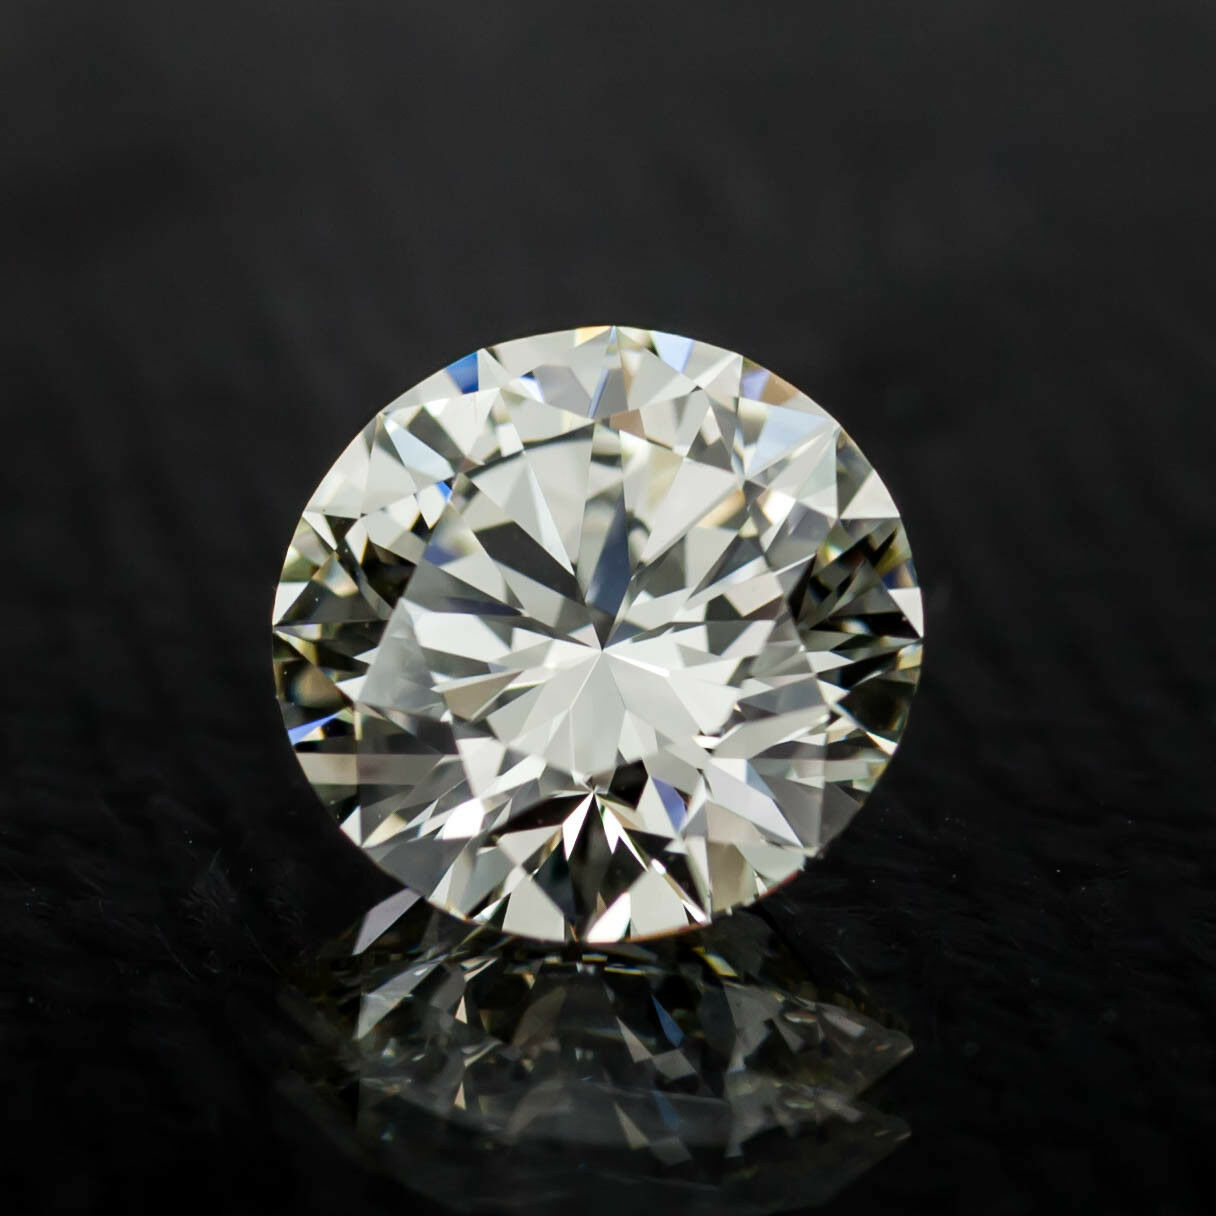 2.02 Carat Loose L / VVS2 Round Brilliant Cut Diamond GIA Certified